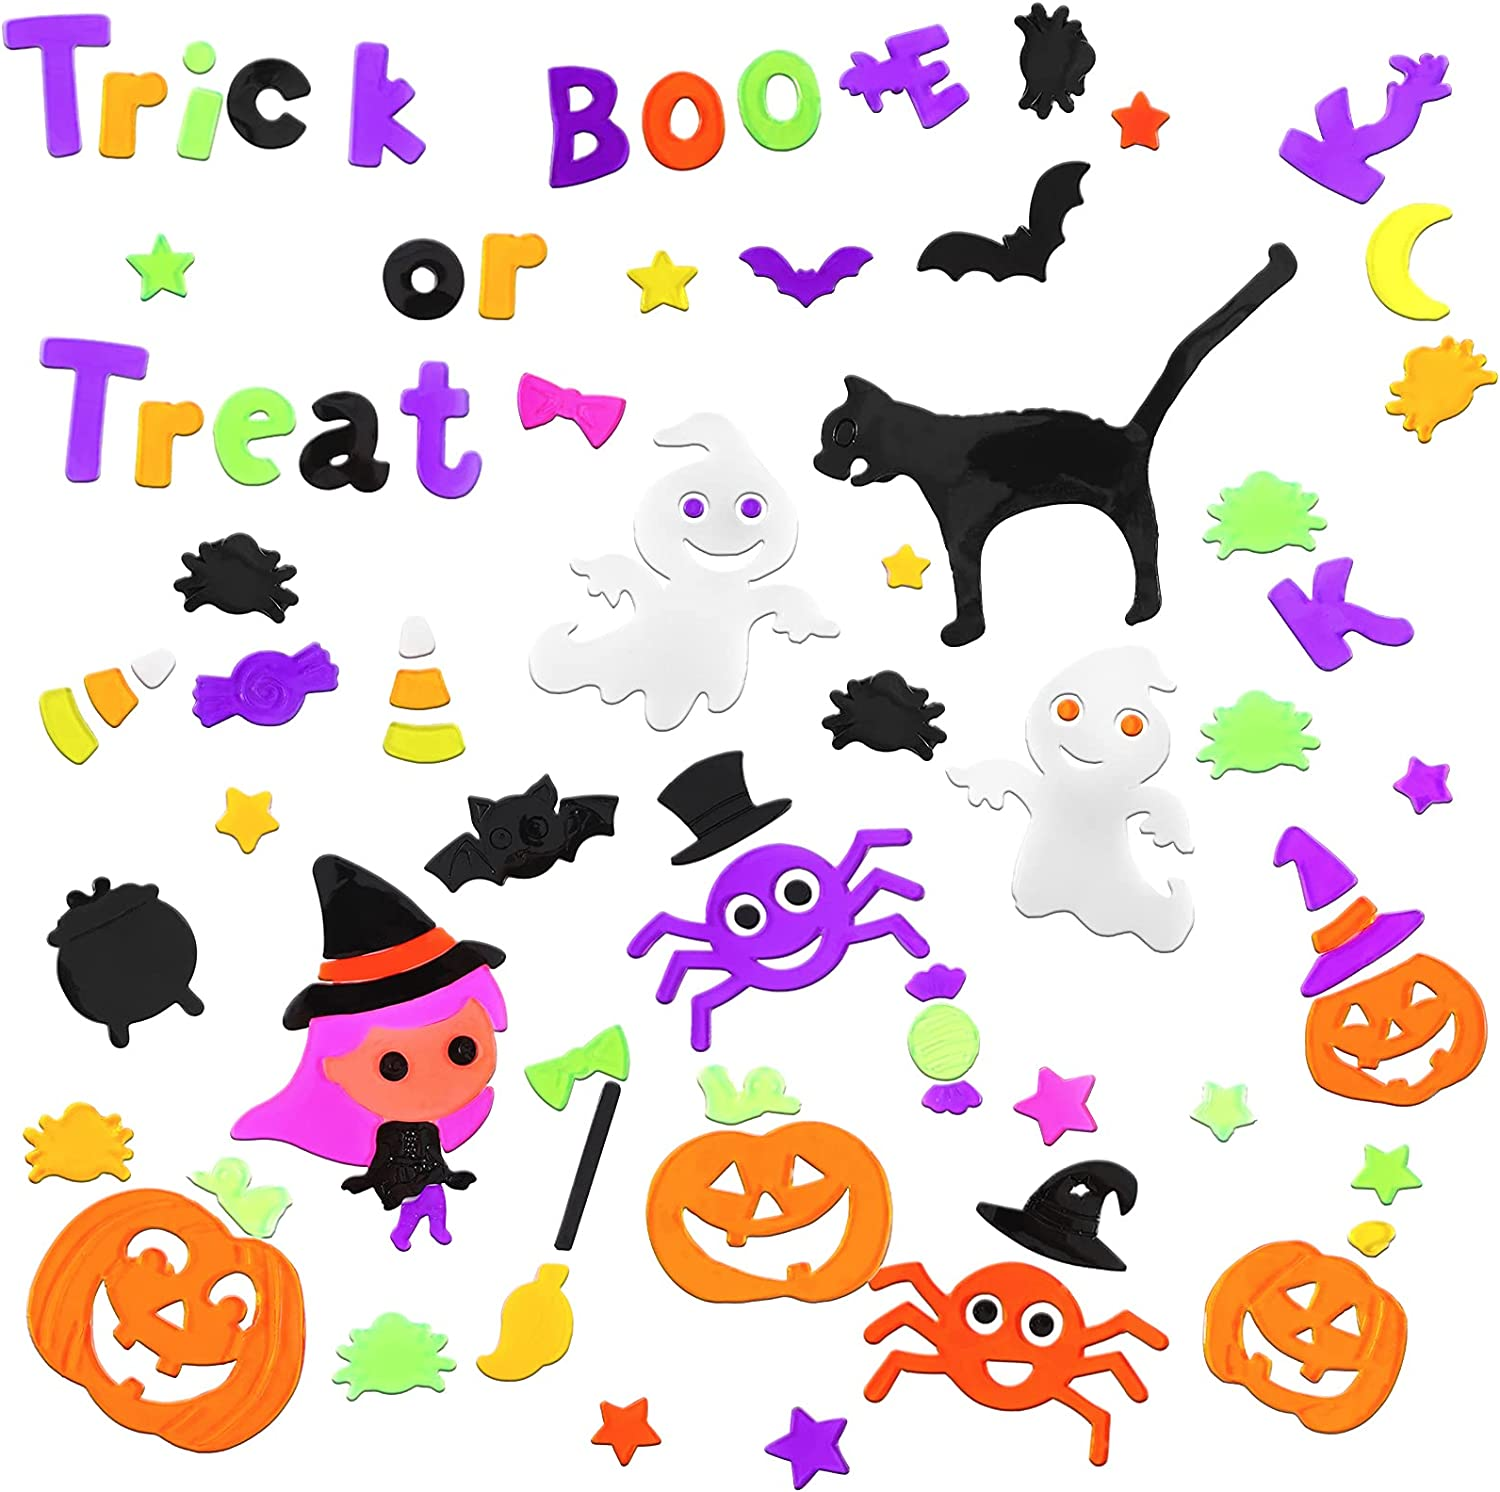 6 Sheets Halloween Window Clings Stic Gel low-pricing Max 70% OFF Colorful